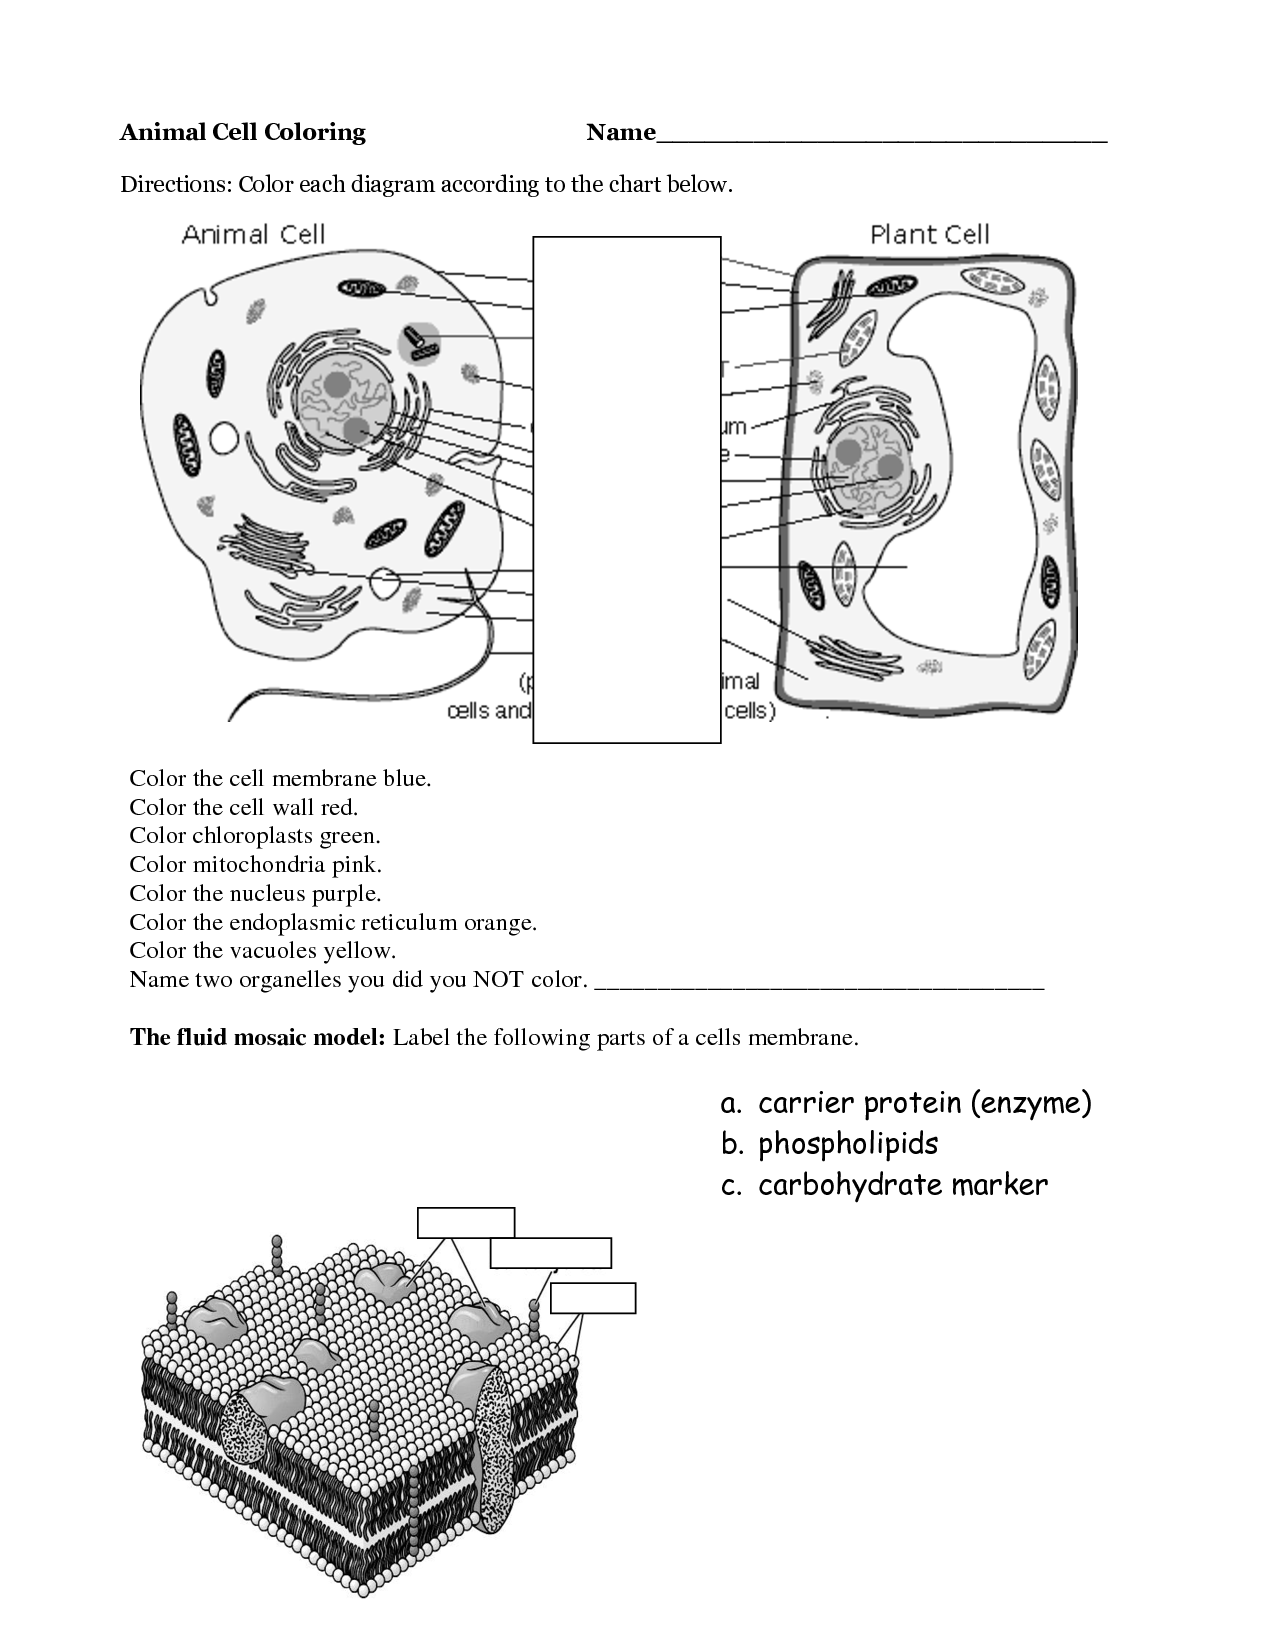 25 Plant Cell Diagram Worksheet Answers